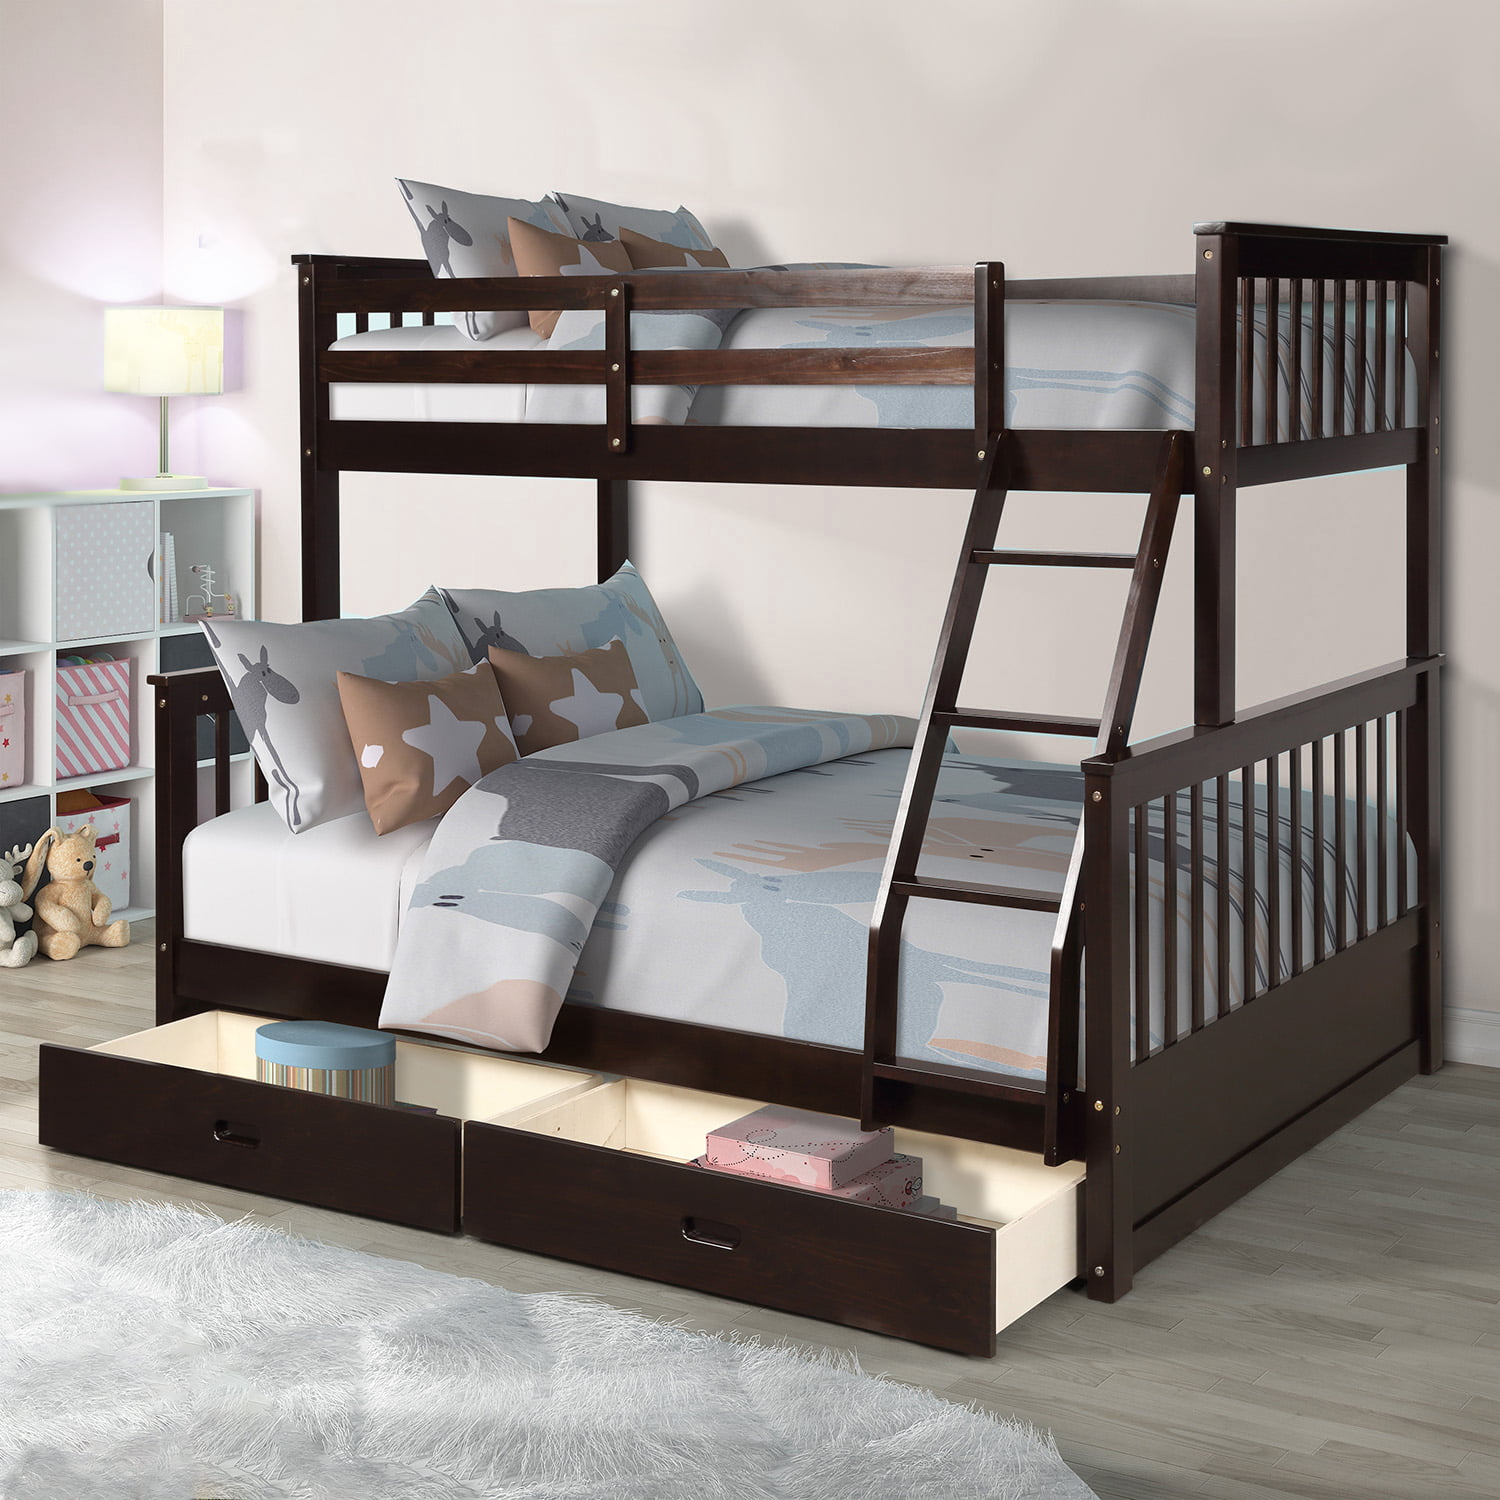 White Twin Over Full Bunk Bed Twin Over Full Bunk Beds With 2 Storage Drawers Solid Wood Bunk Beds With Ladder And Safety Rail No Box Spring Required Bunk Beds For Kids Teen